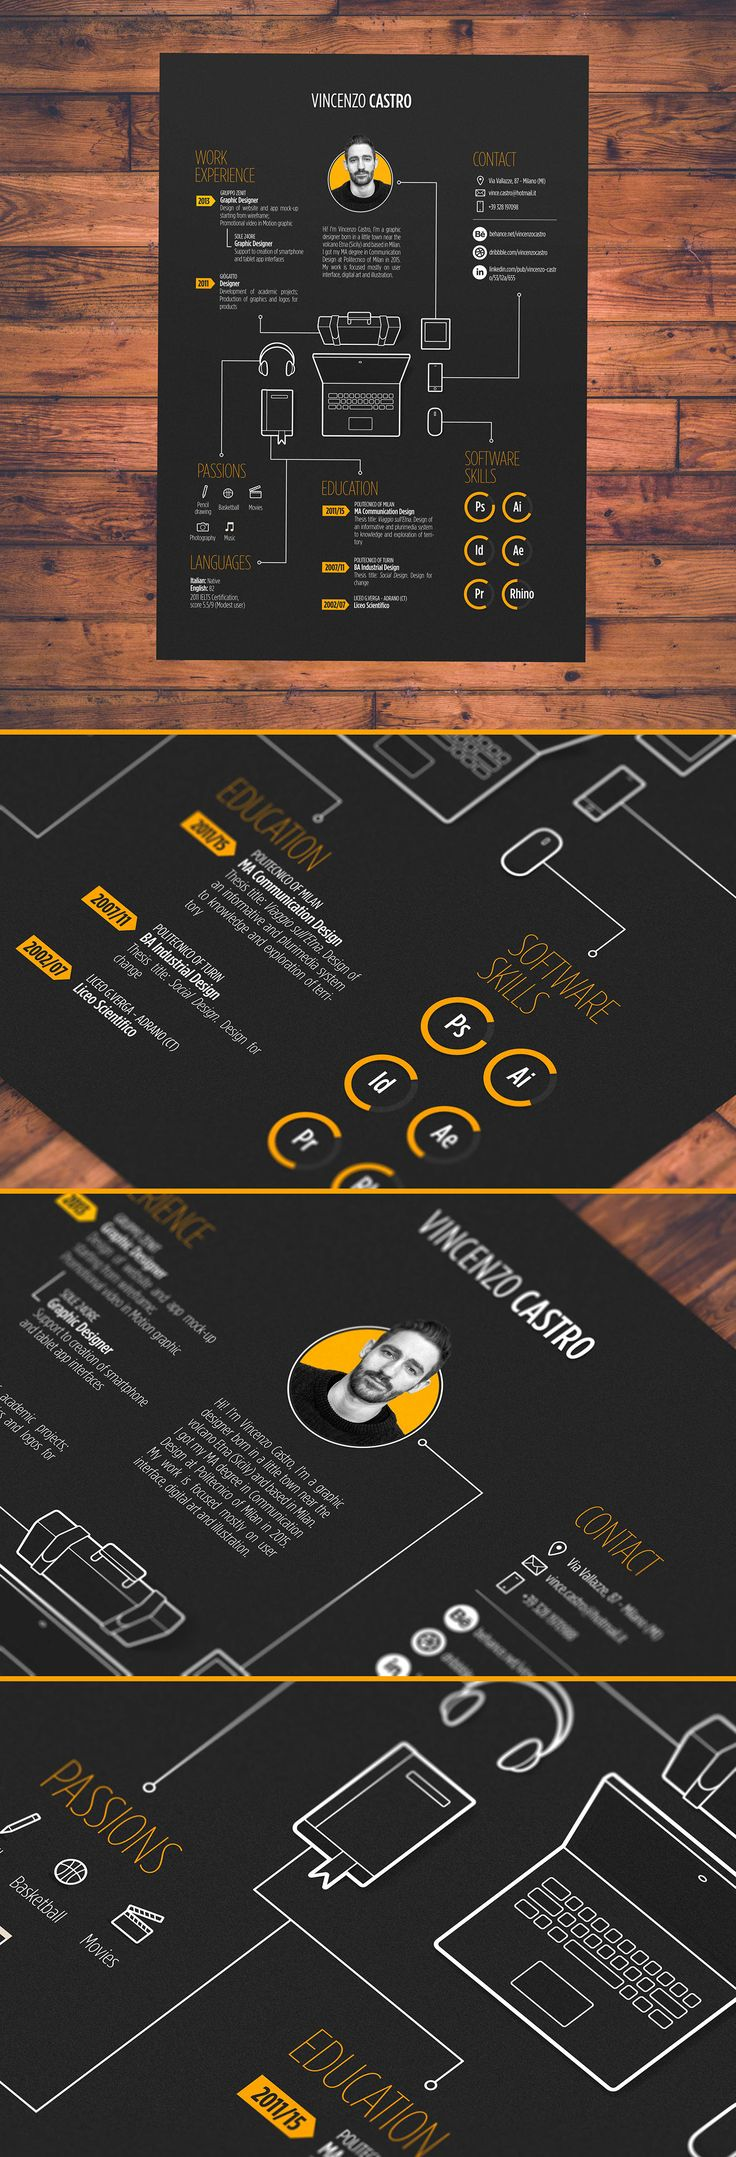 Resume Designer 1000 images about resumes on pinterest cool resumes uxui designer and graphic designer resume 1000 Ideas About Cv Design On Pinterest Creative Cv Creative Cv Design And Curriculum